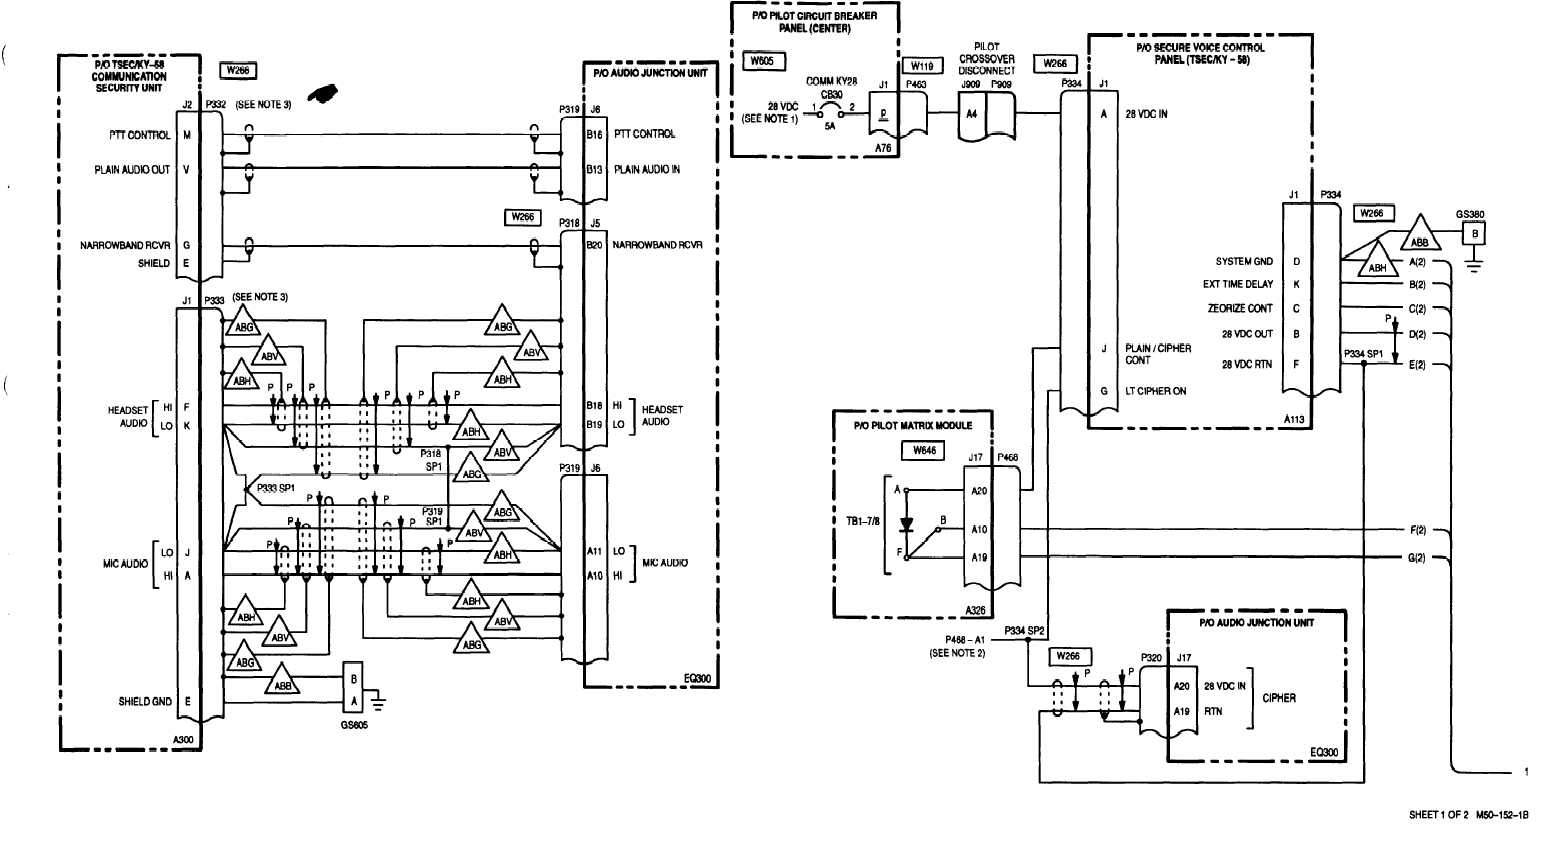 E m engine wire harness diagram get free image